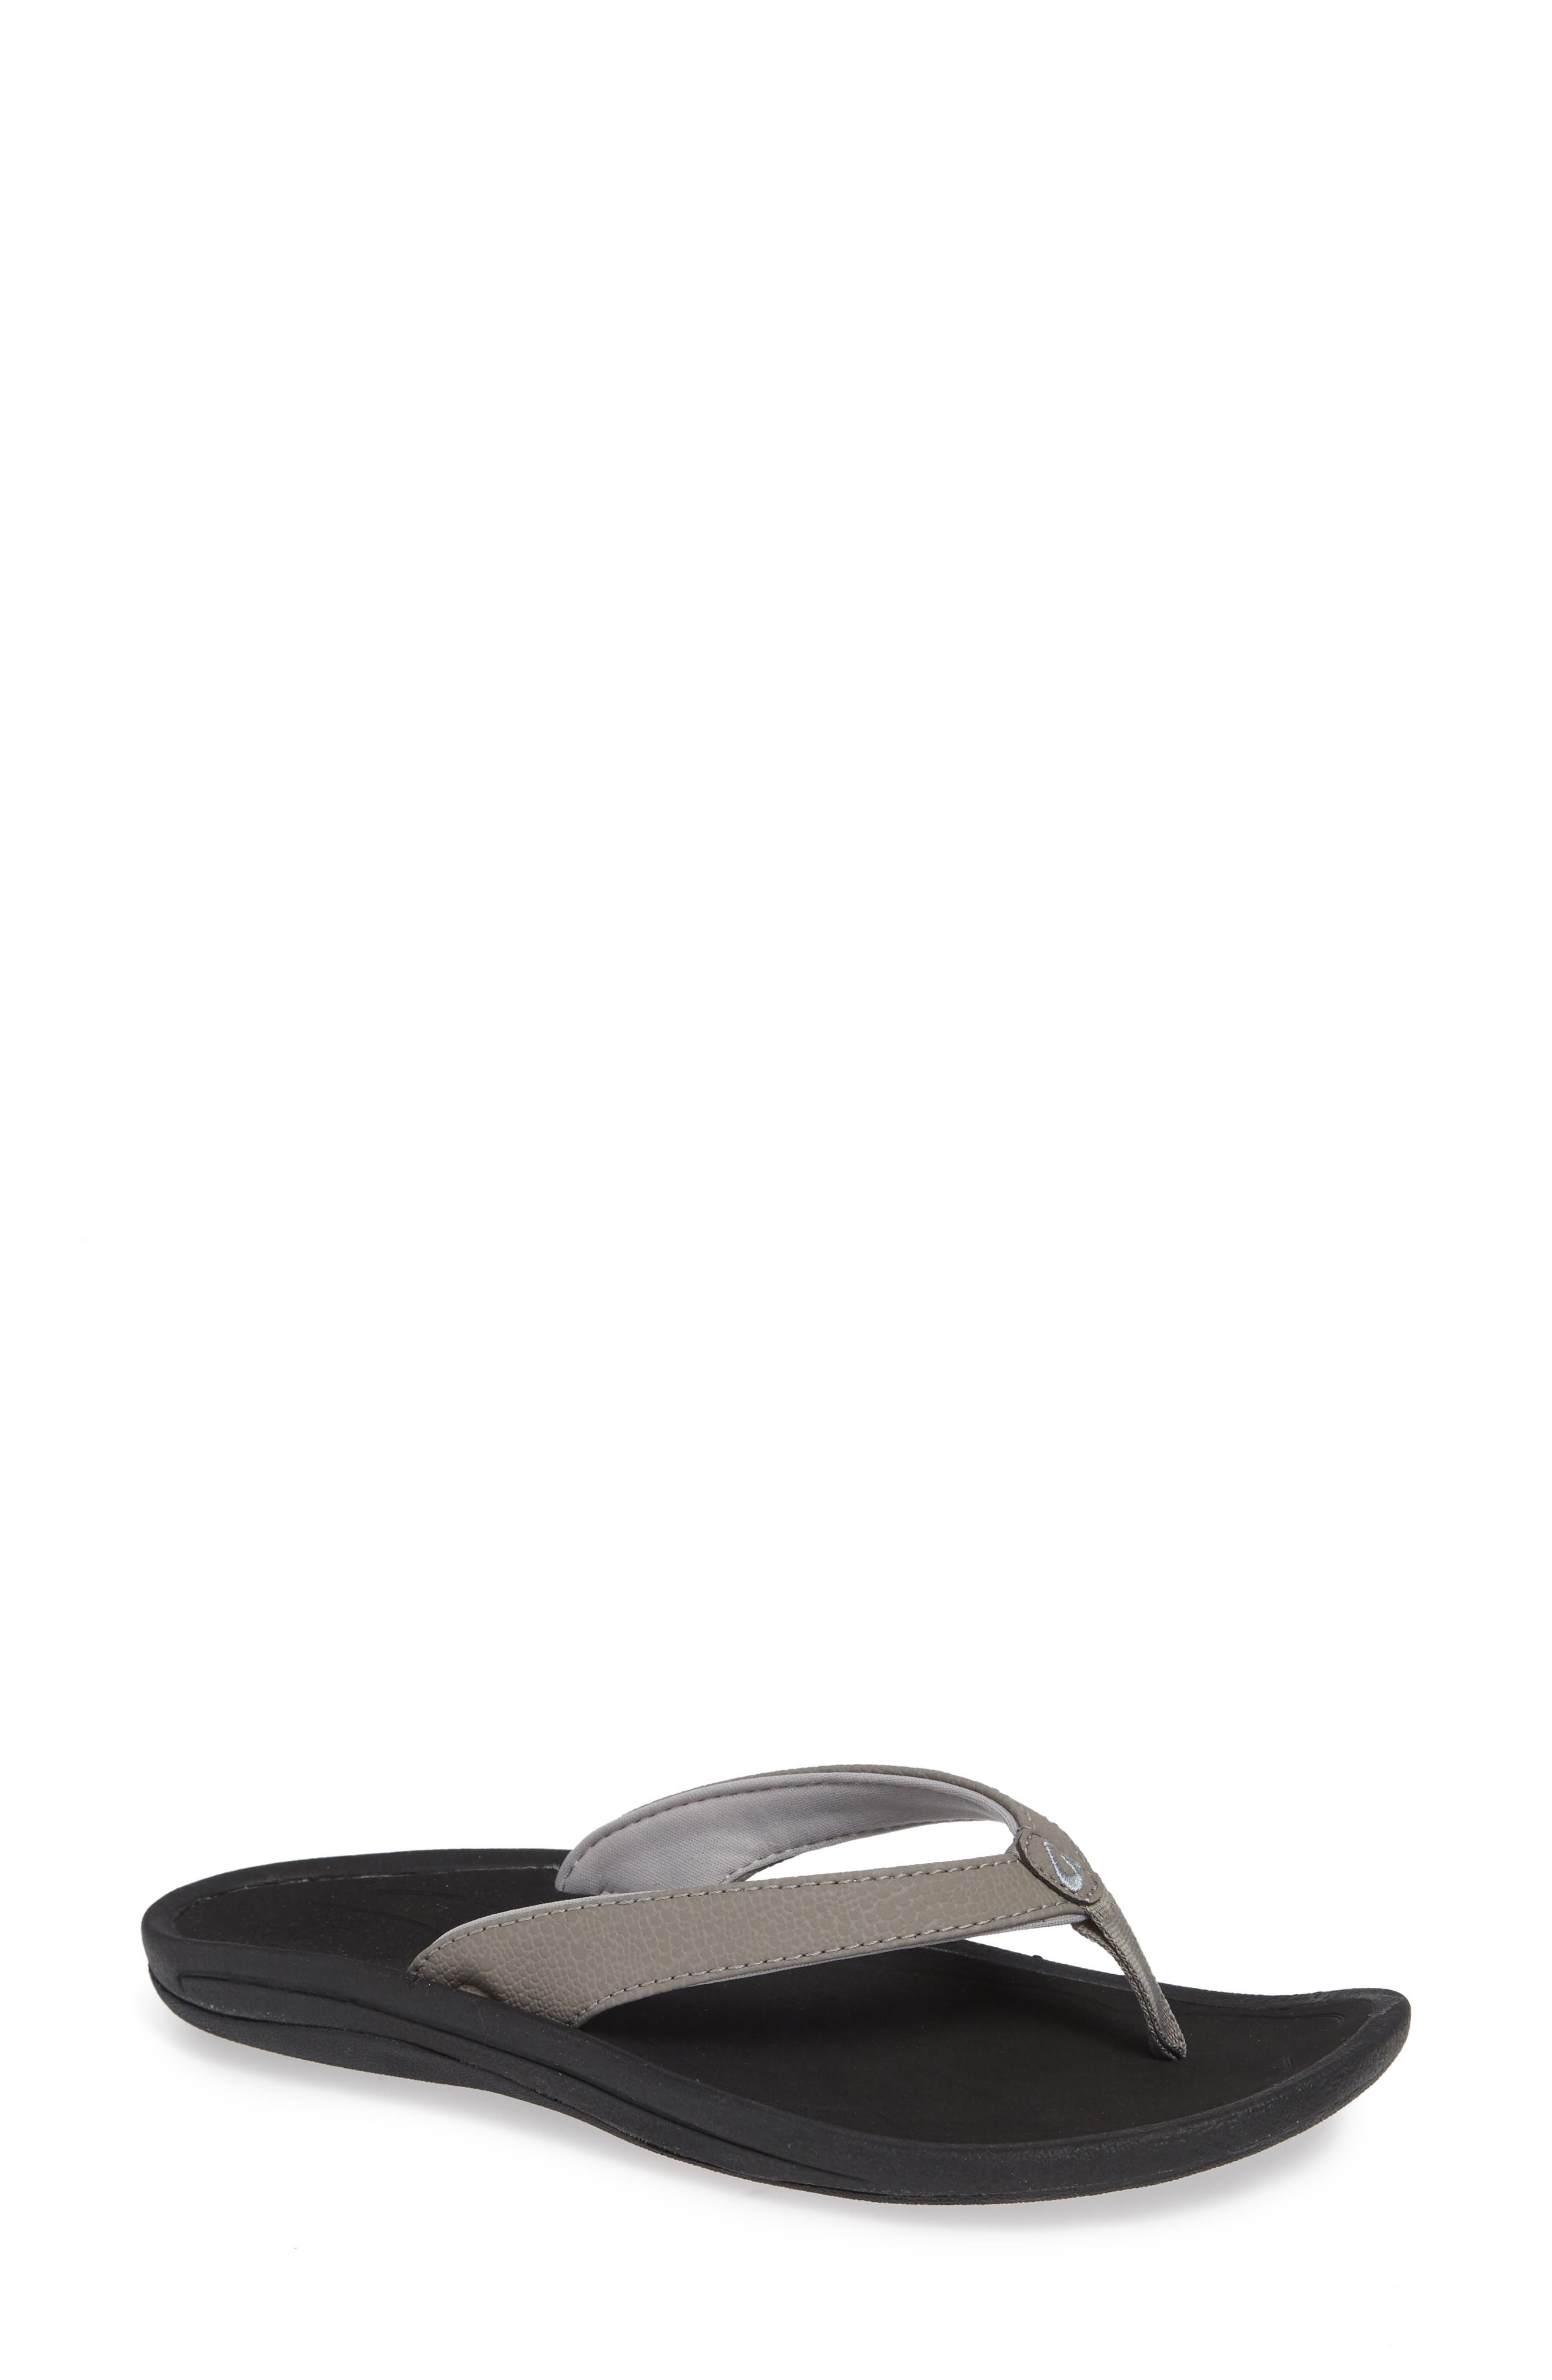 'Kulapa Kai' Thong Sandal,                         Main,                         color, FOG/ BLACK FABRIC